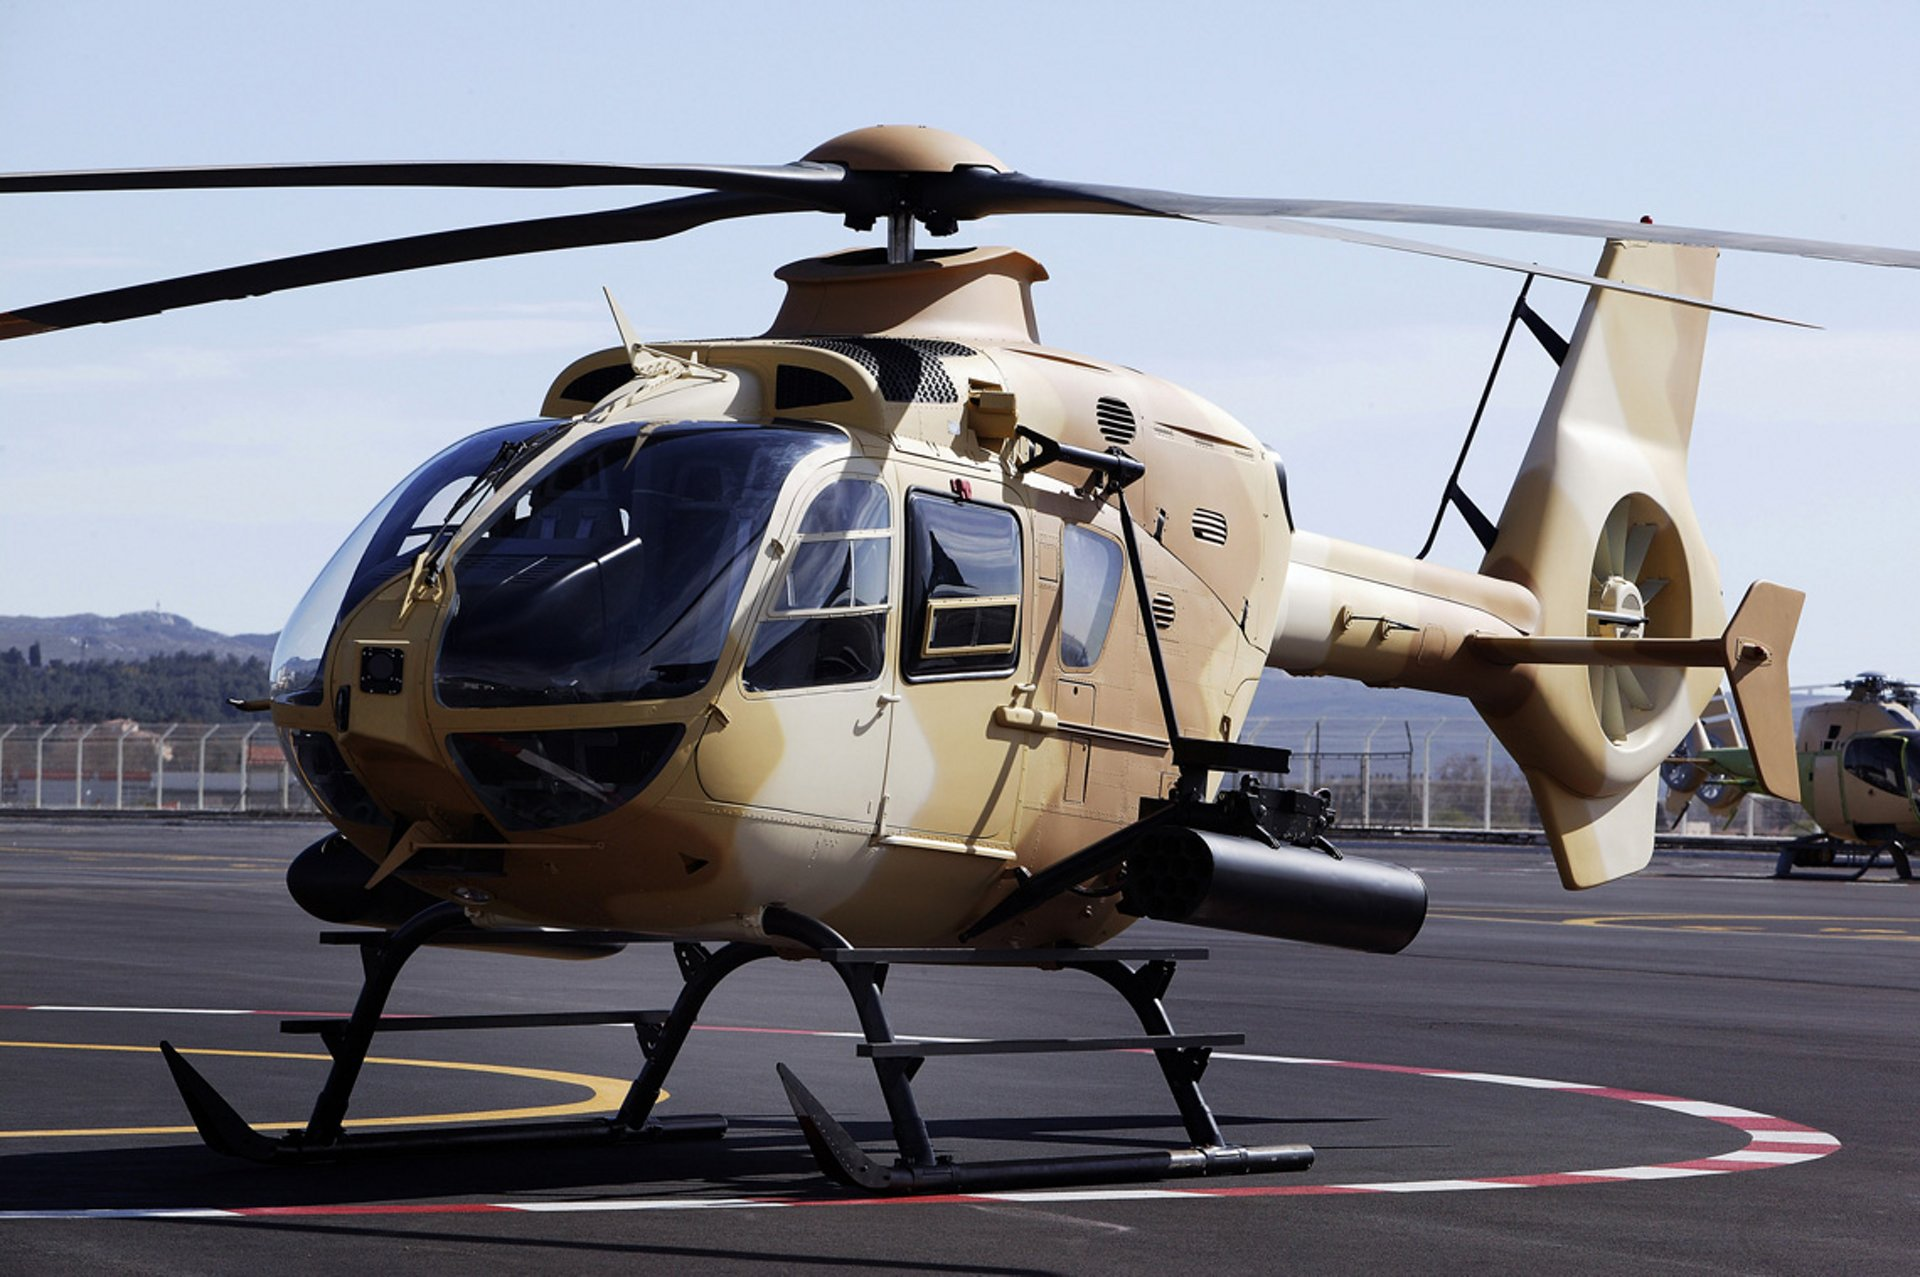 Iraqi Ministry of Defence's H135M land on an heliport